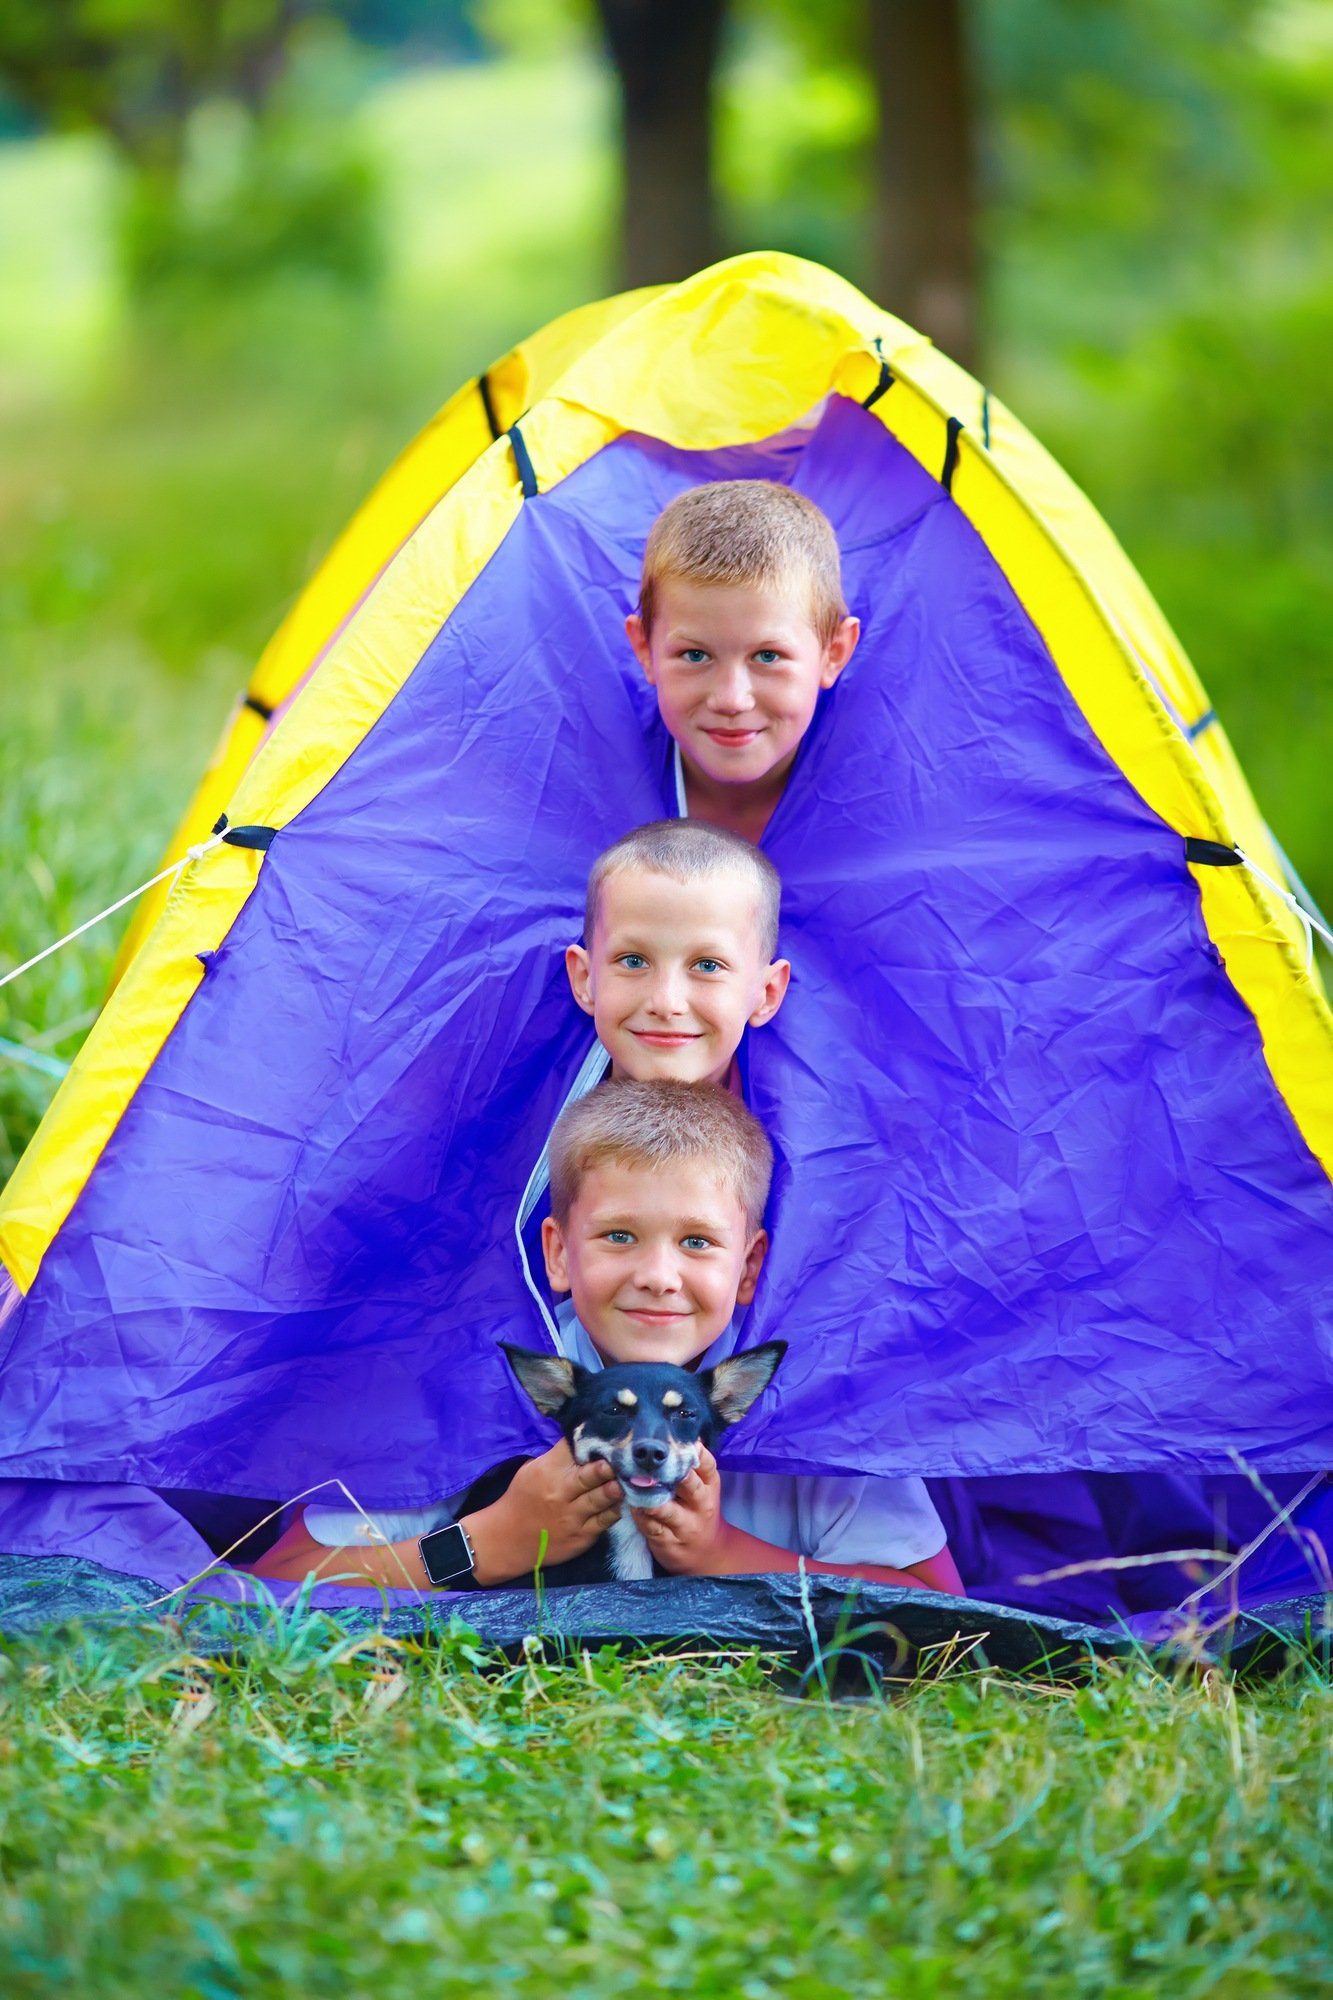 Follow these camping tips for a fun and safe trip with kids!